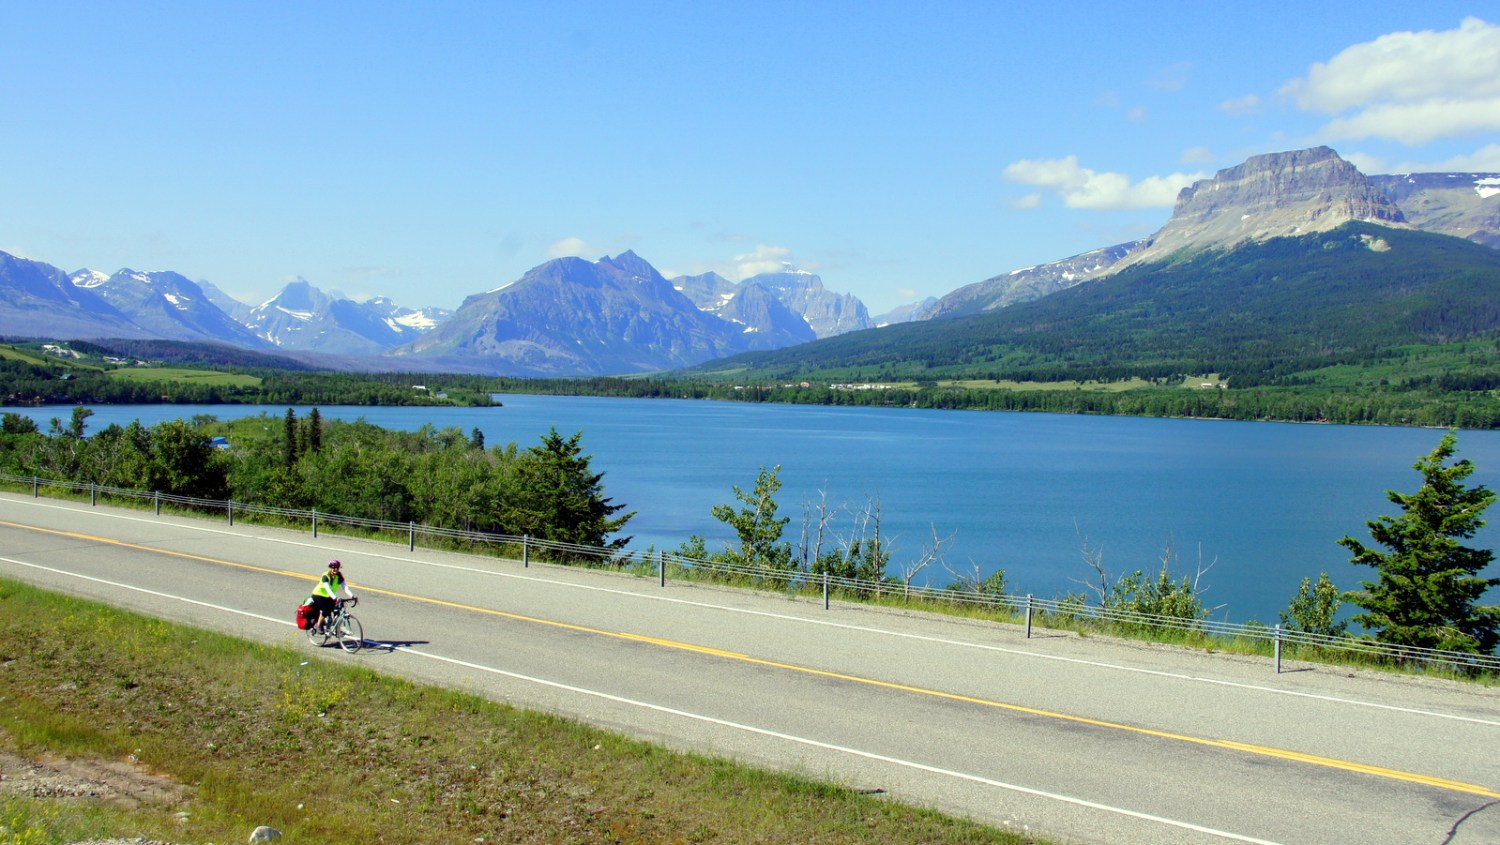 Riding north on the east side of Glacier toward Canada.